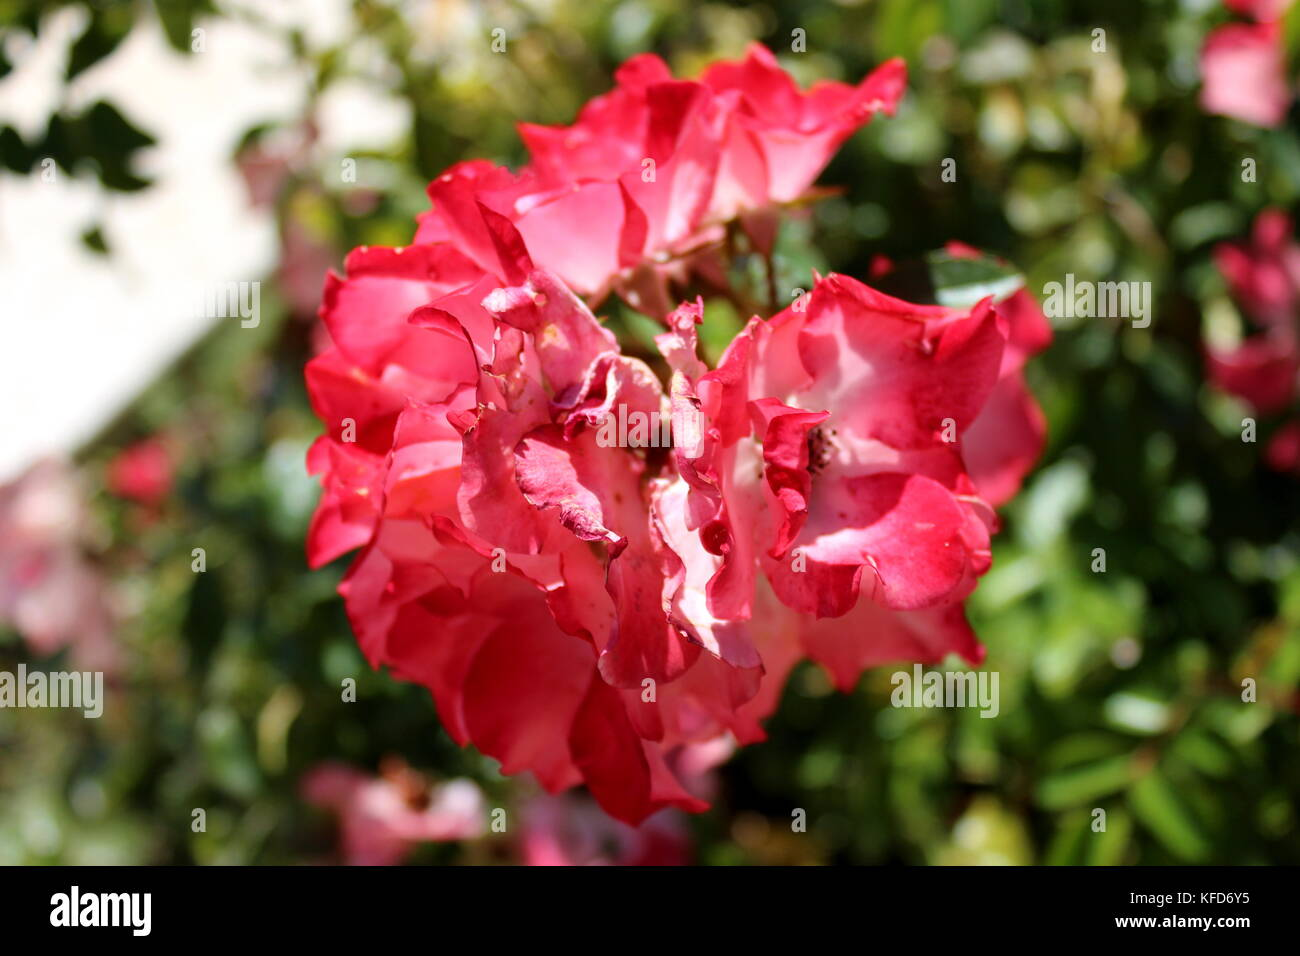 Red rose like flower blooming in front of green leaves and on warm sunny day - Stock Image